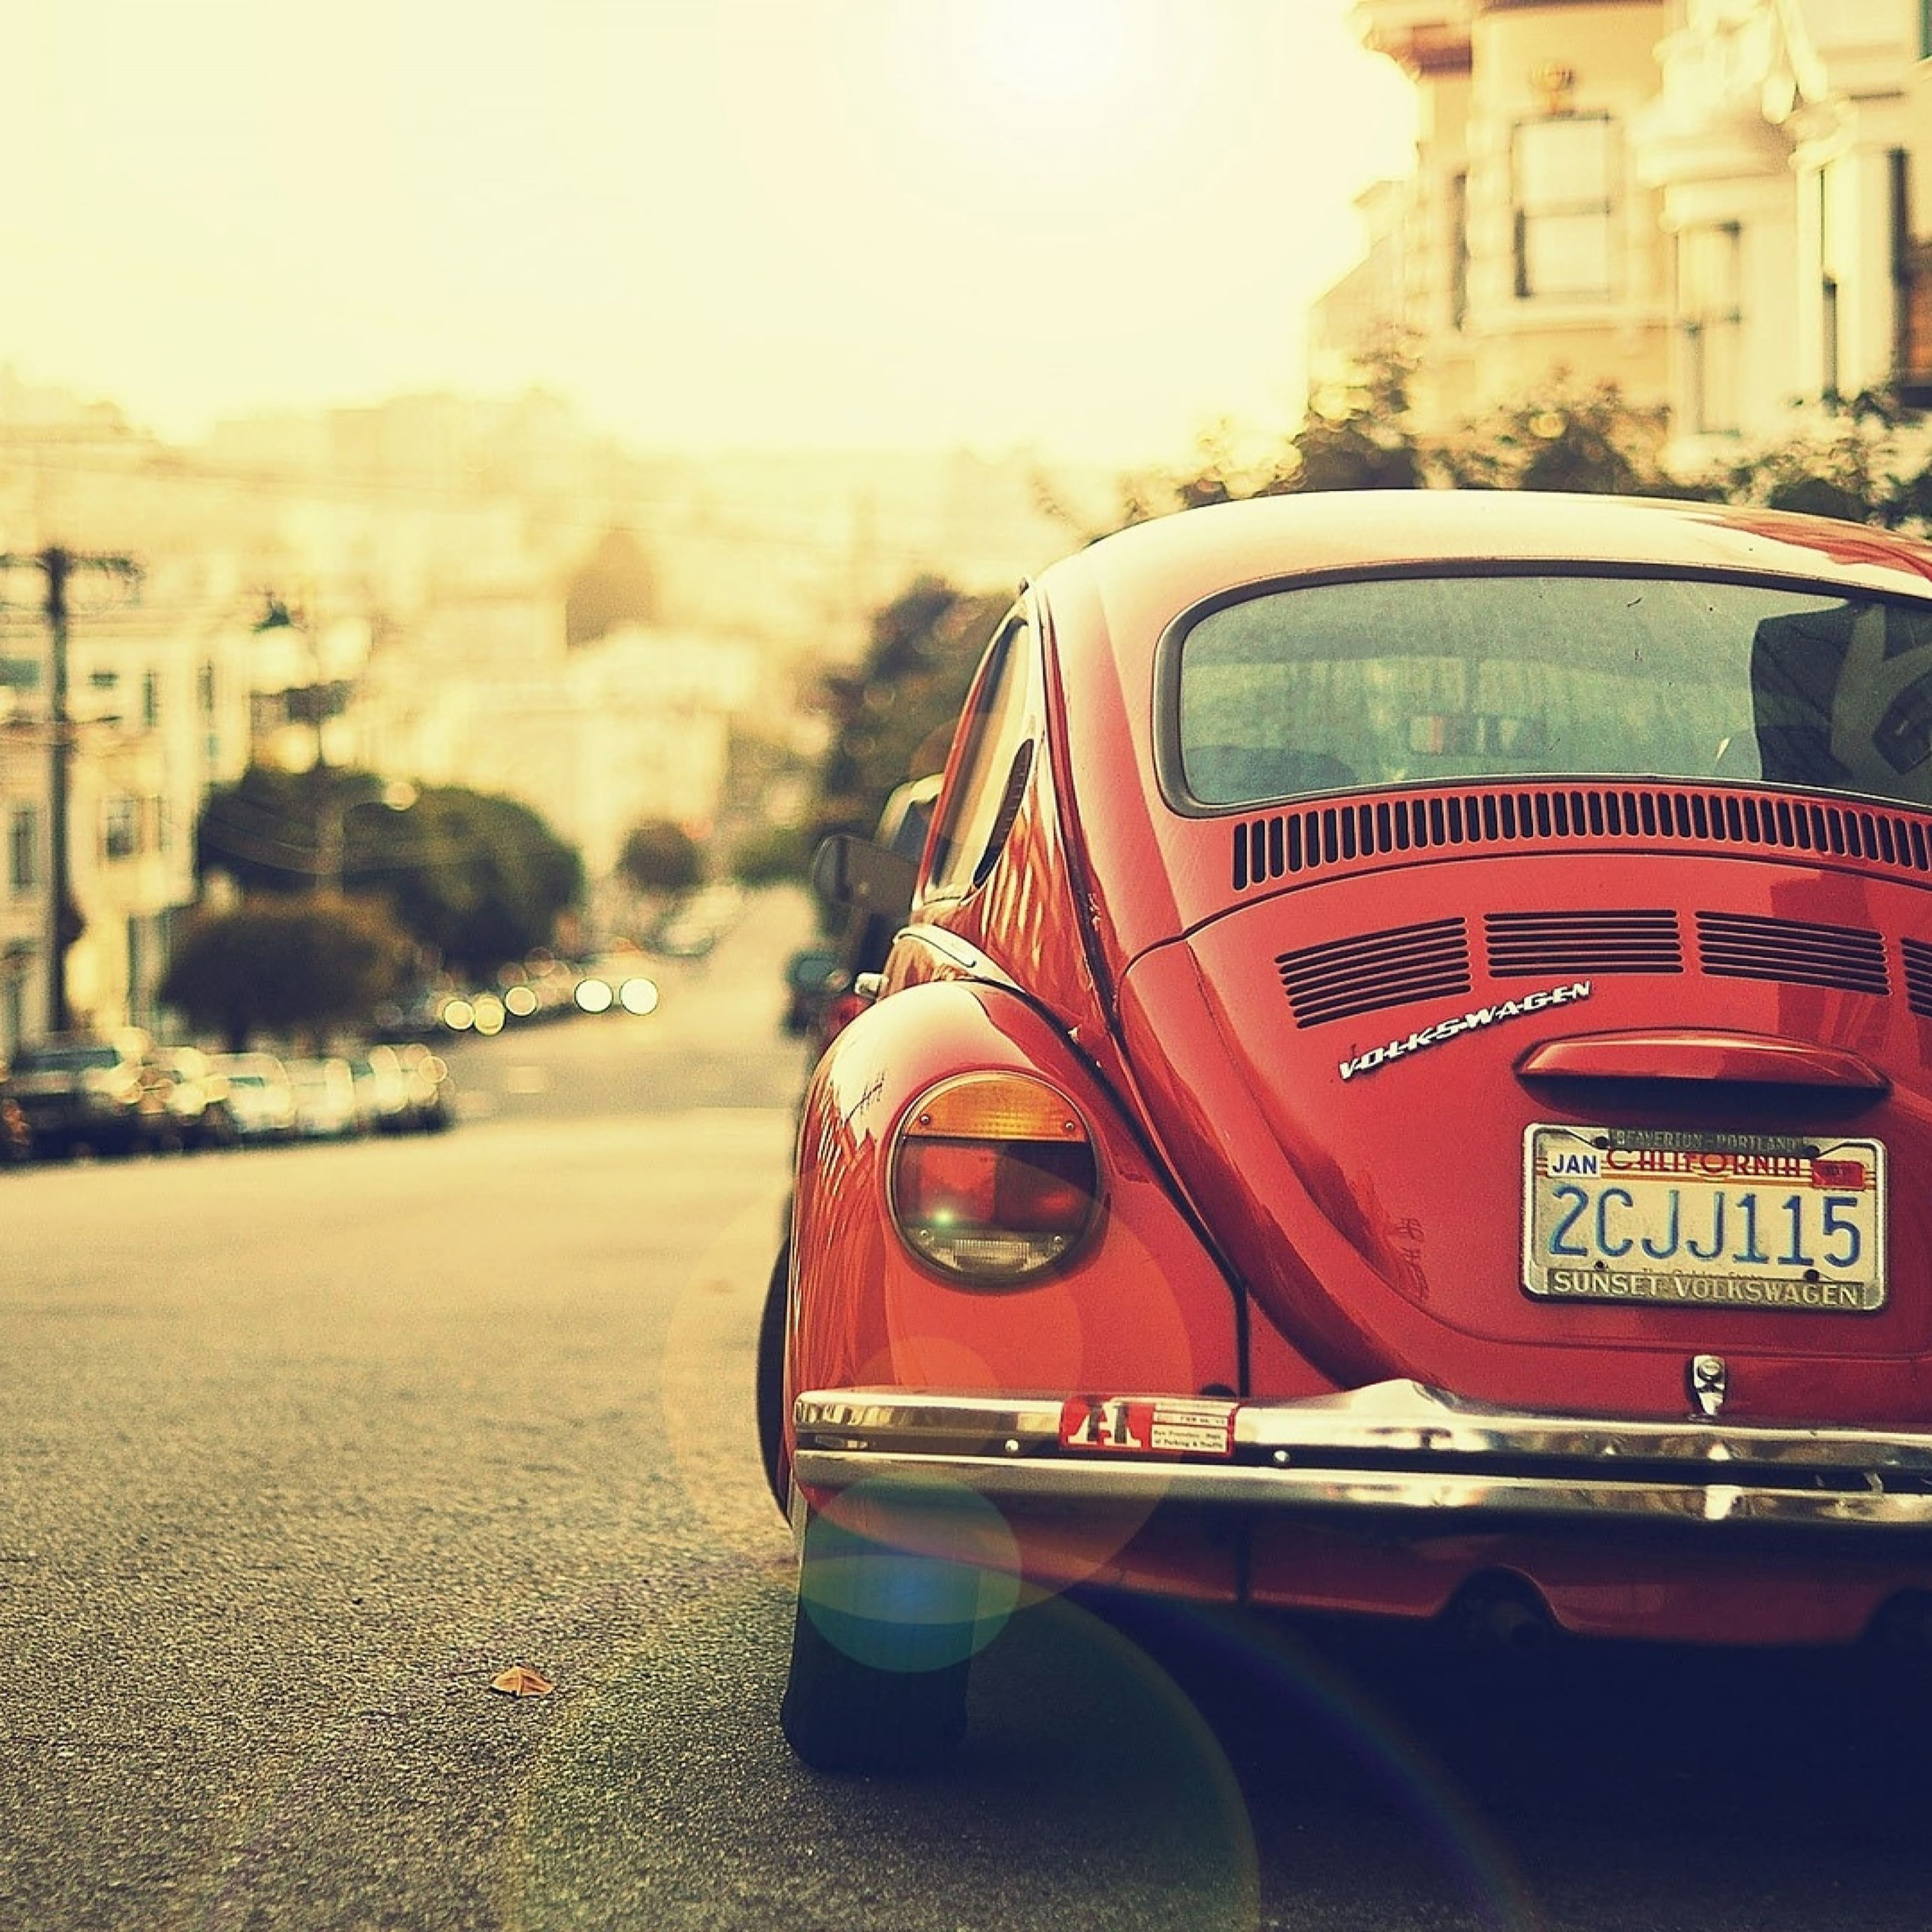 Vintage Car Wallpaper For Android Mm13 Old Car Street Vintage Papers Co